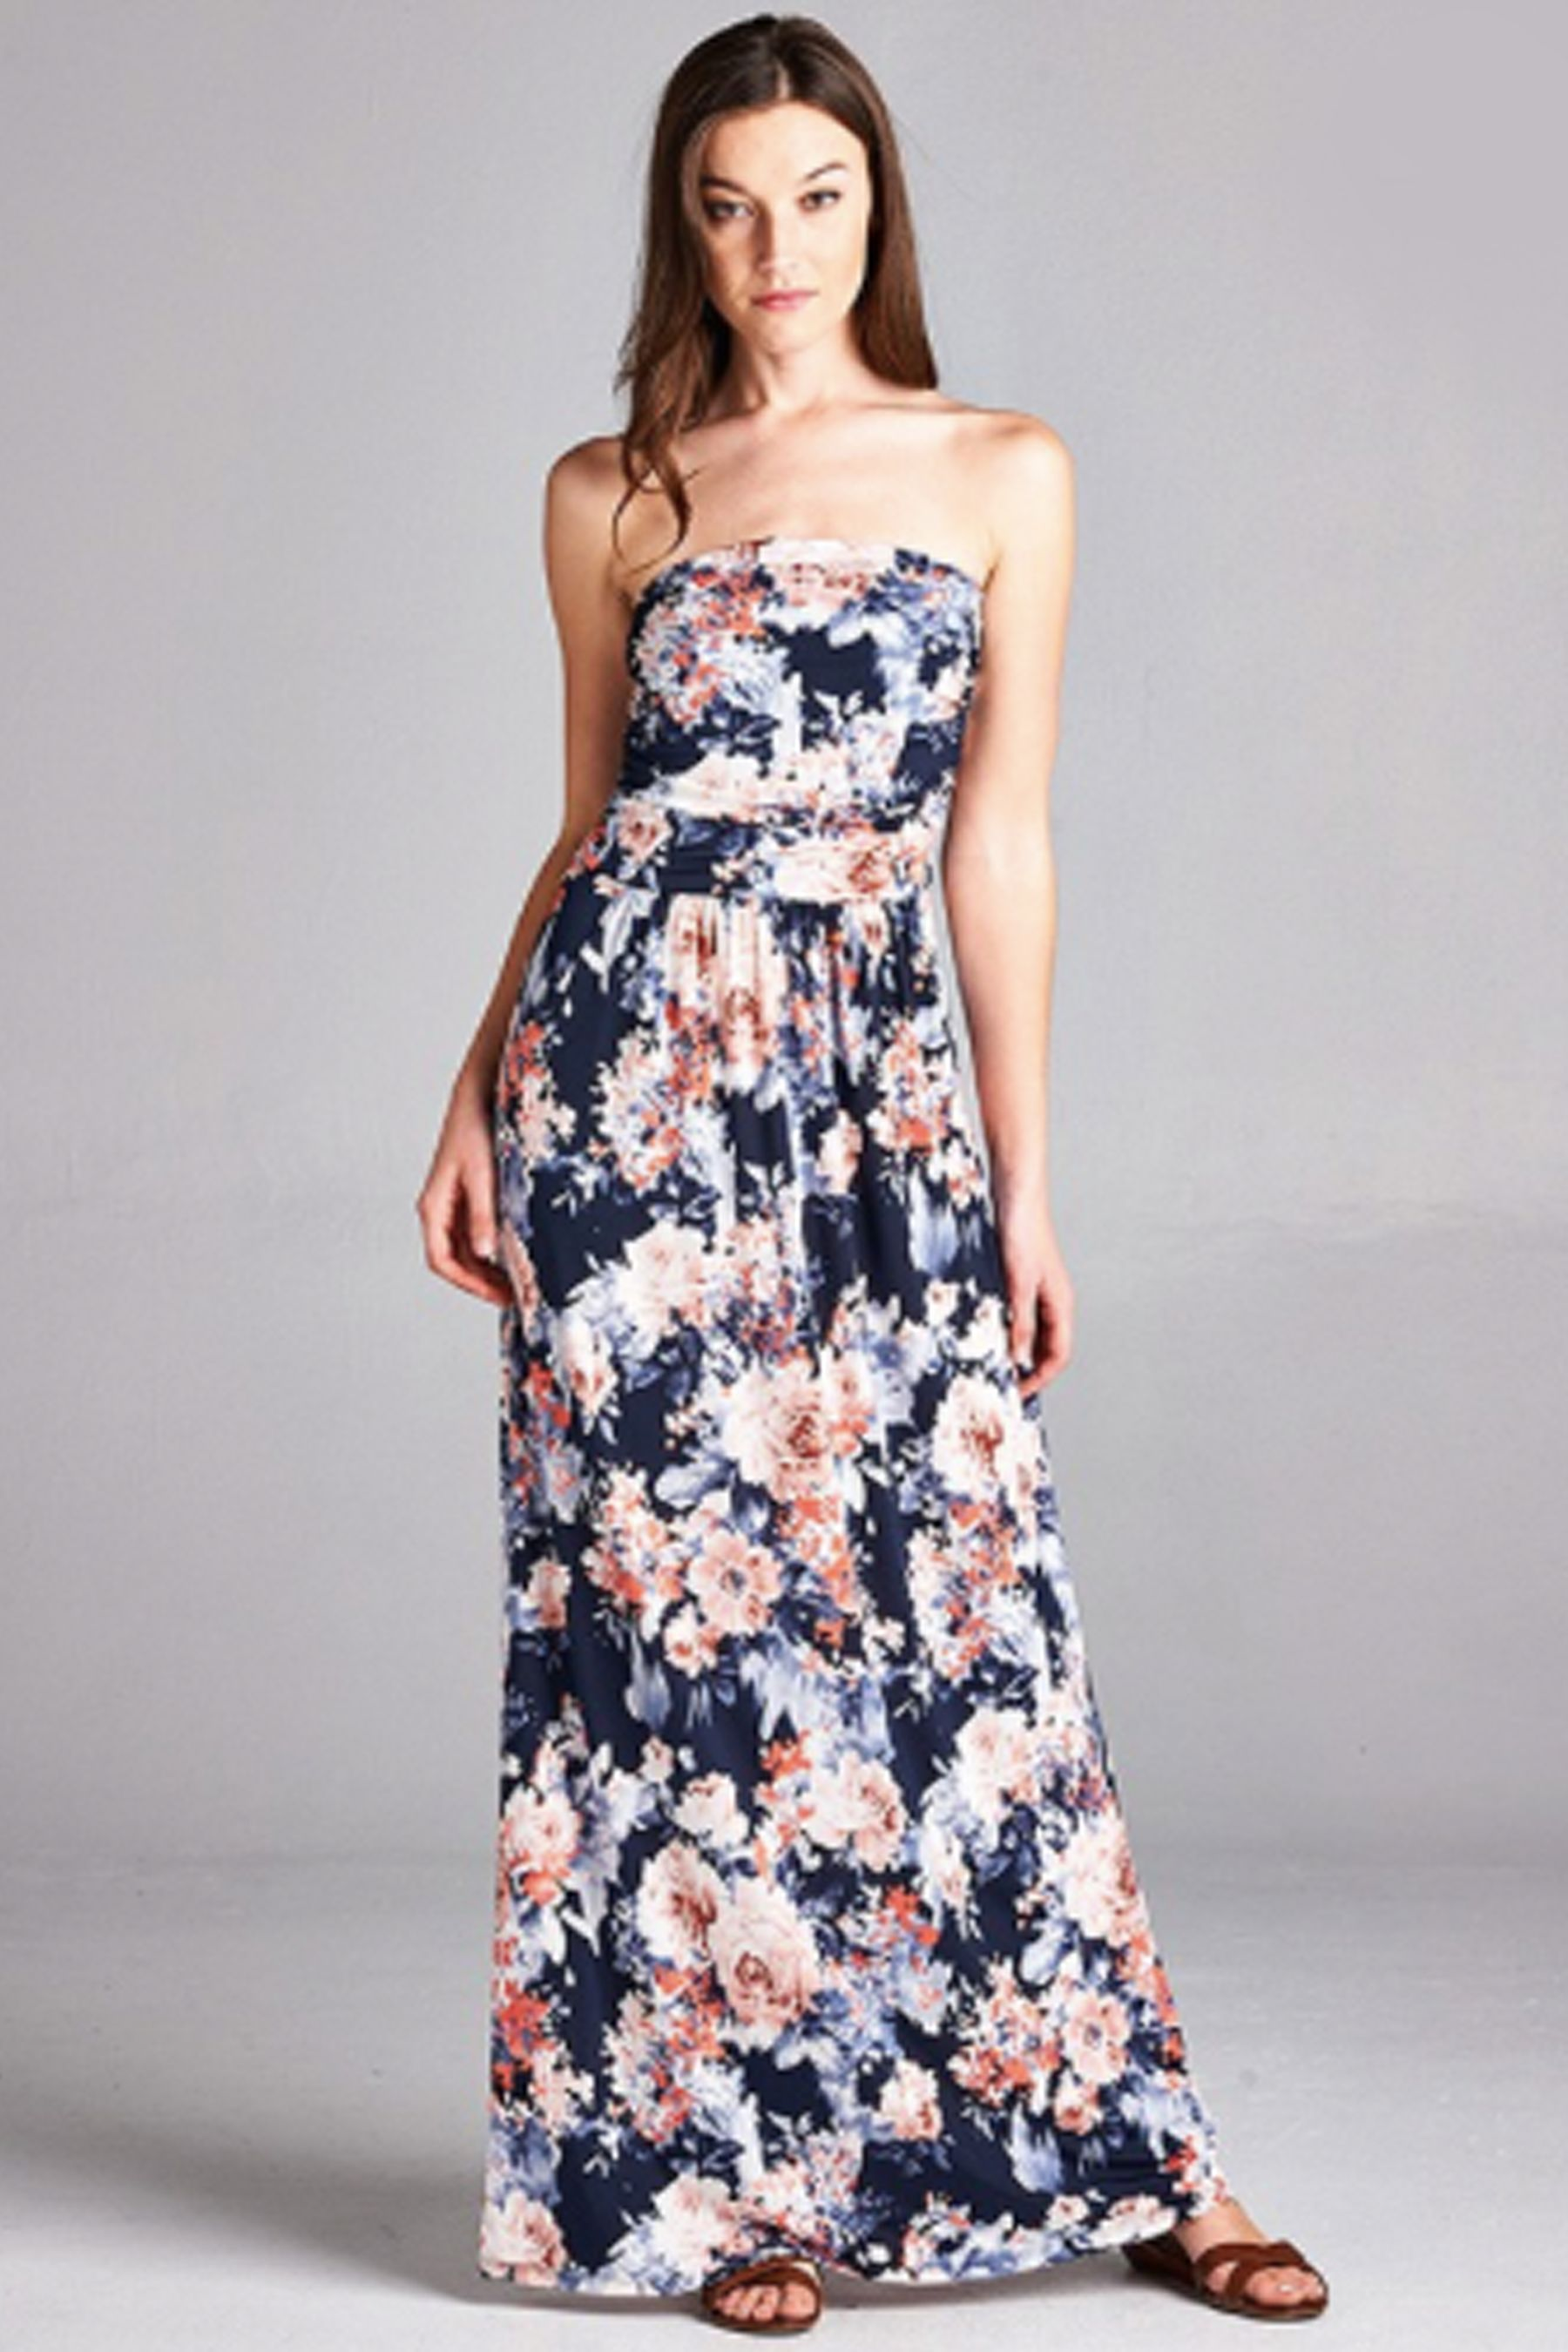 Women S Garden Party Navy And Coral Floral Pretty Strapless Maxi Dress Maxi Dress Pretty Maxi Dress Dresses [ 2700 x 1800 Pixel ]